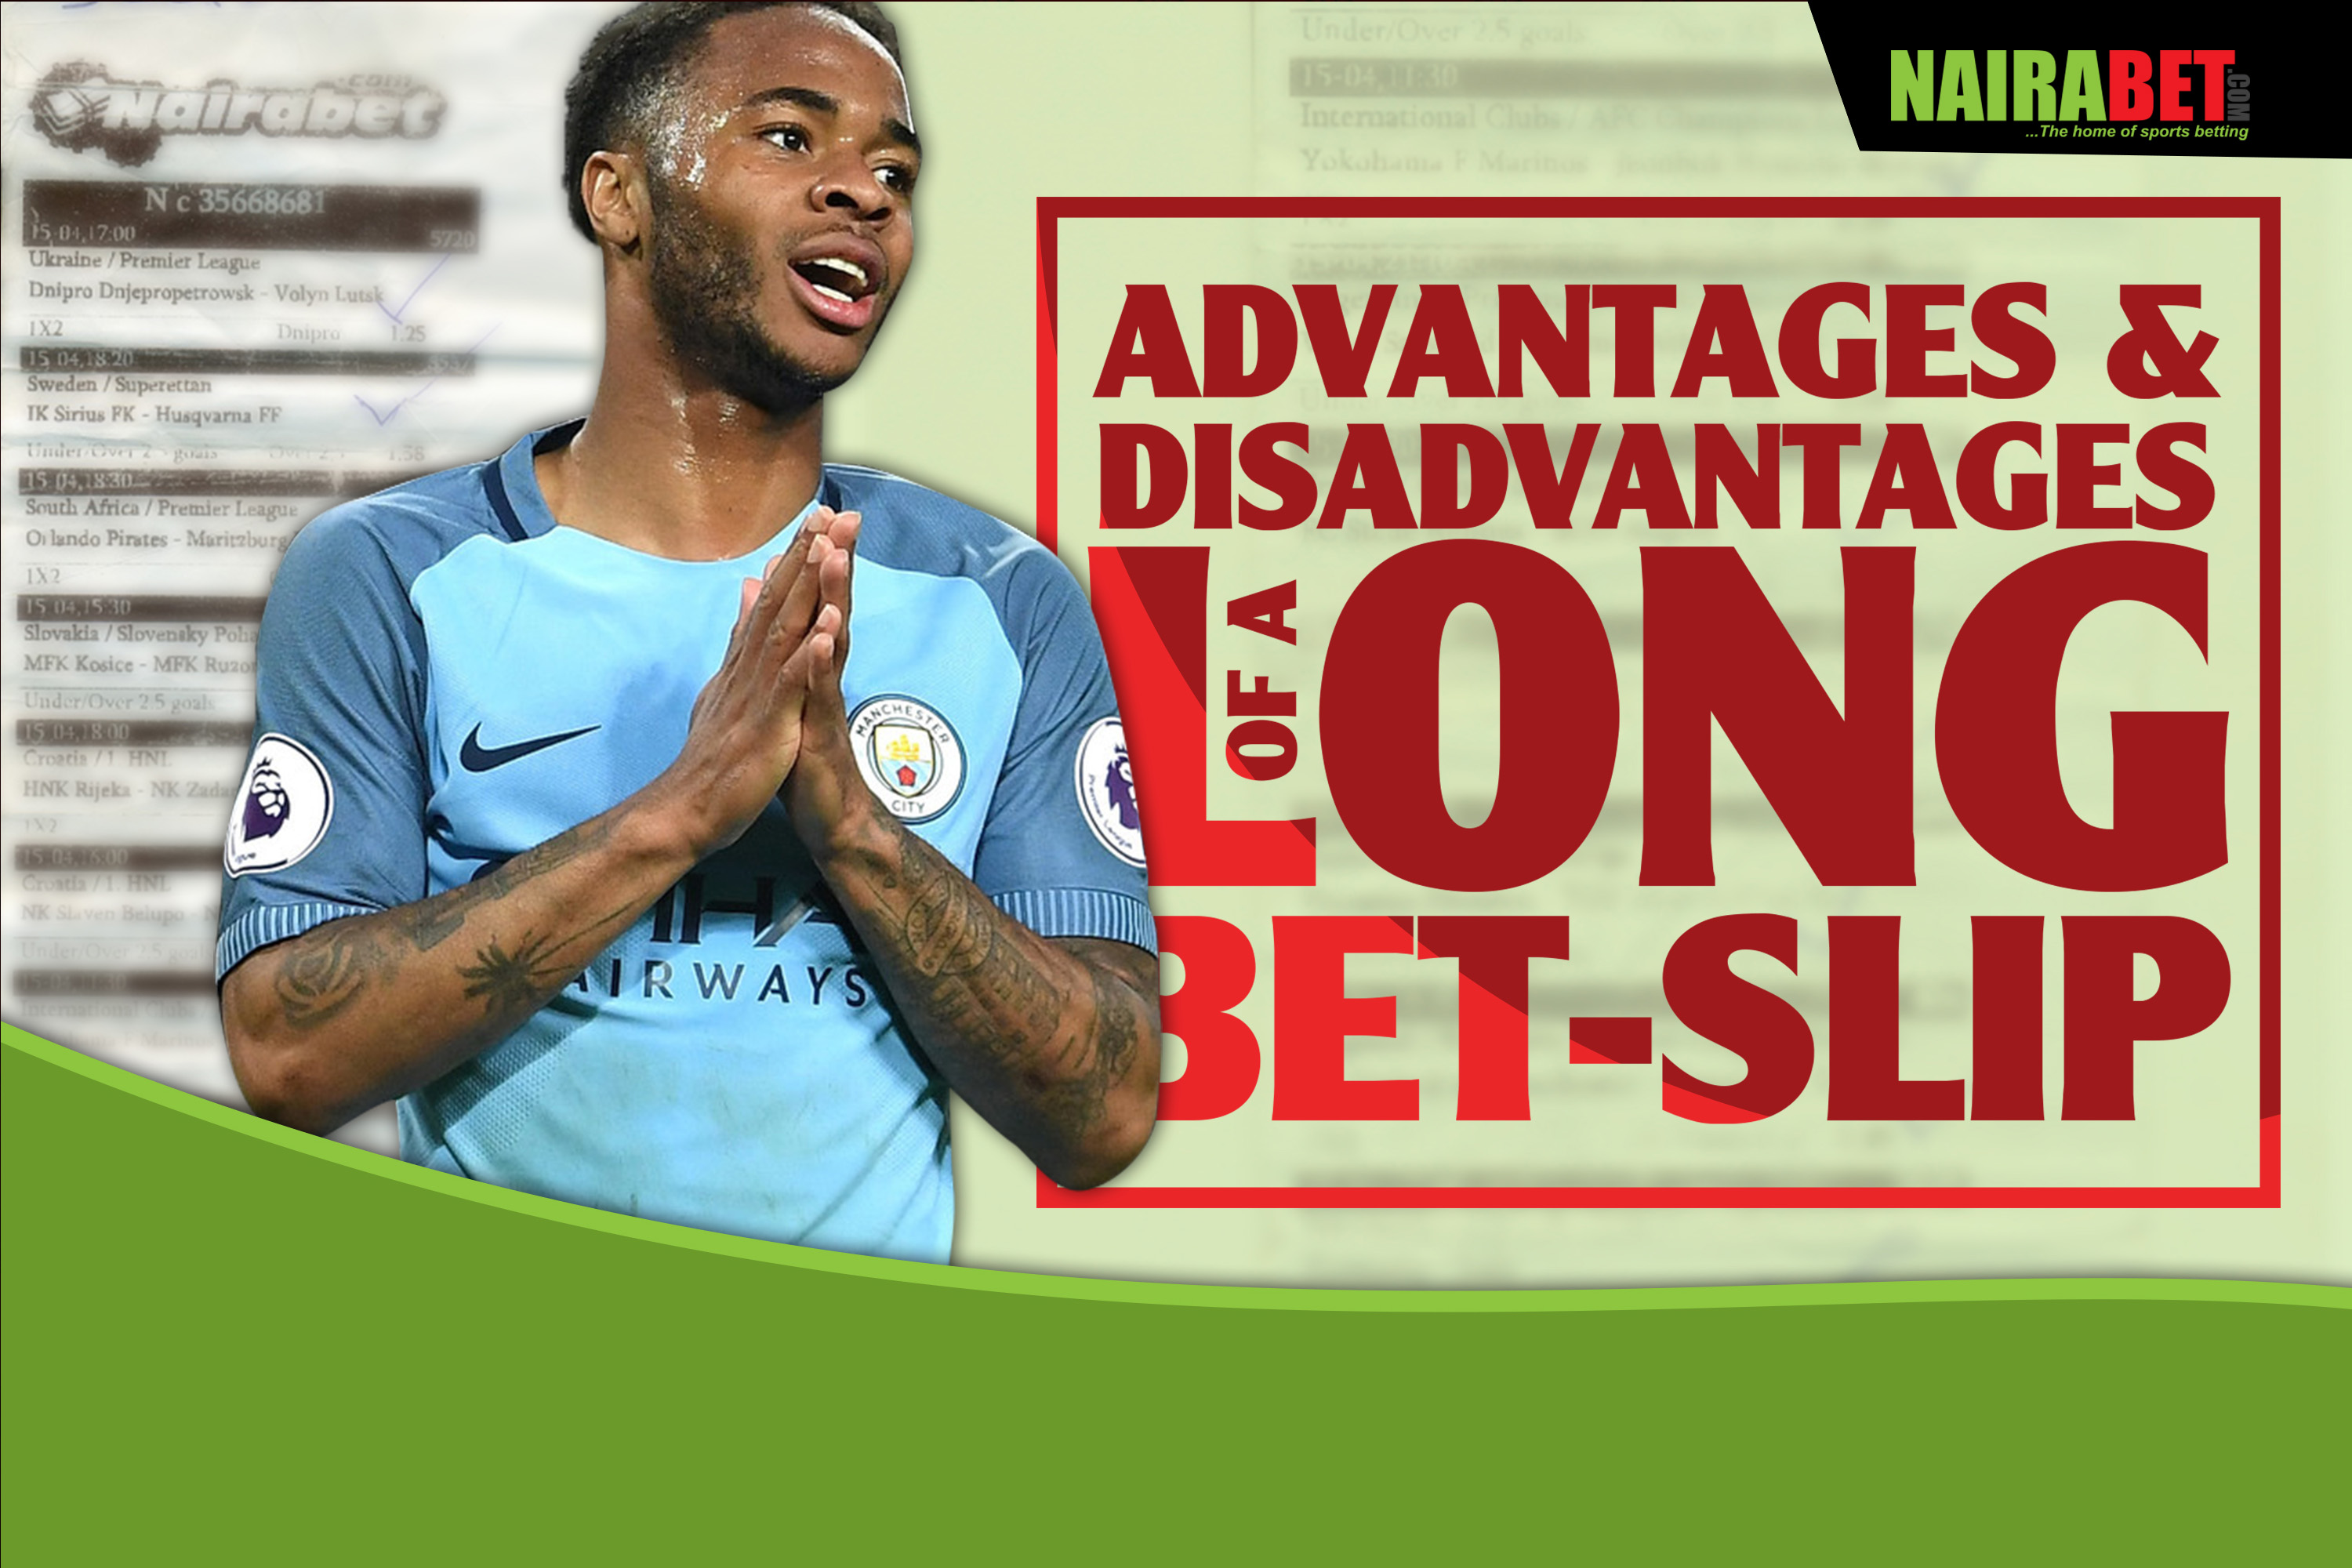 advantages and disadvantages of long bet slip